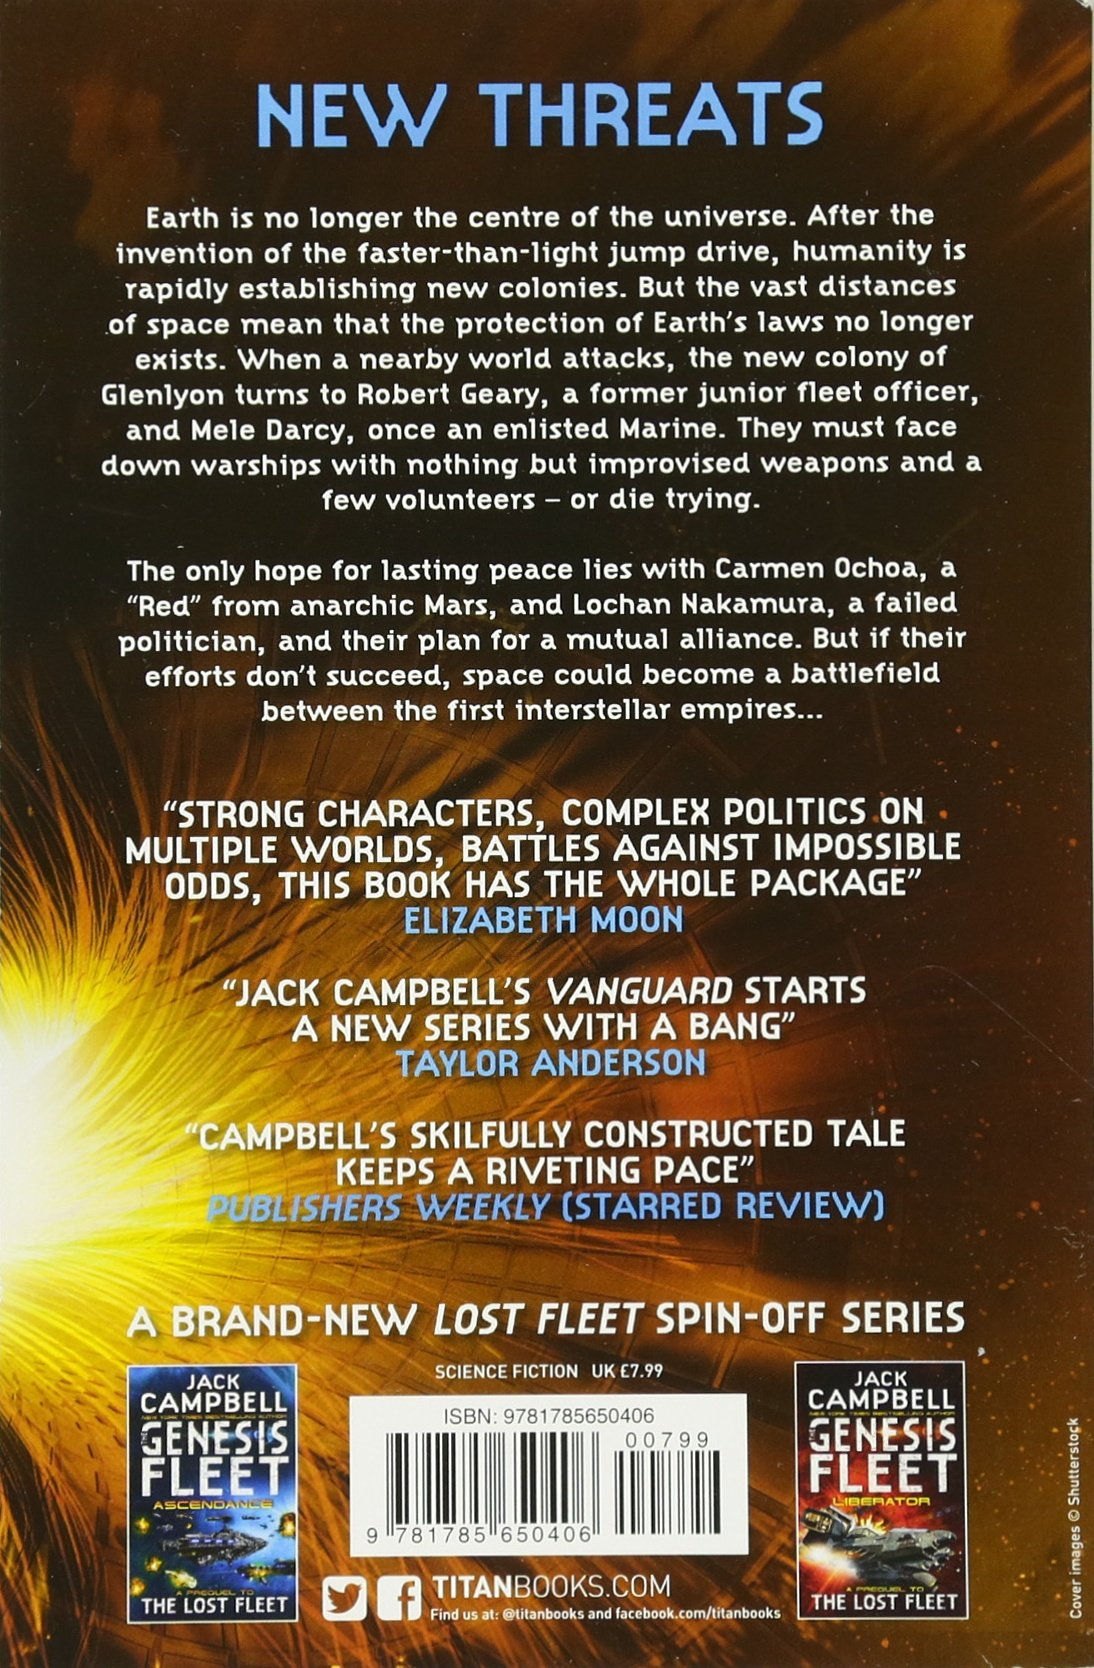 Genesis Fleet  Vanguard: Book 1 (the Genesis Fleet): Amazon: Jack  Campbell: 9781785650406: Books